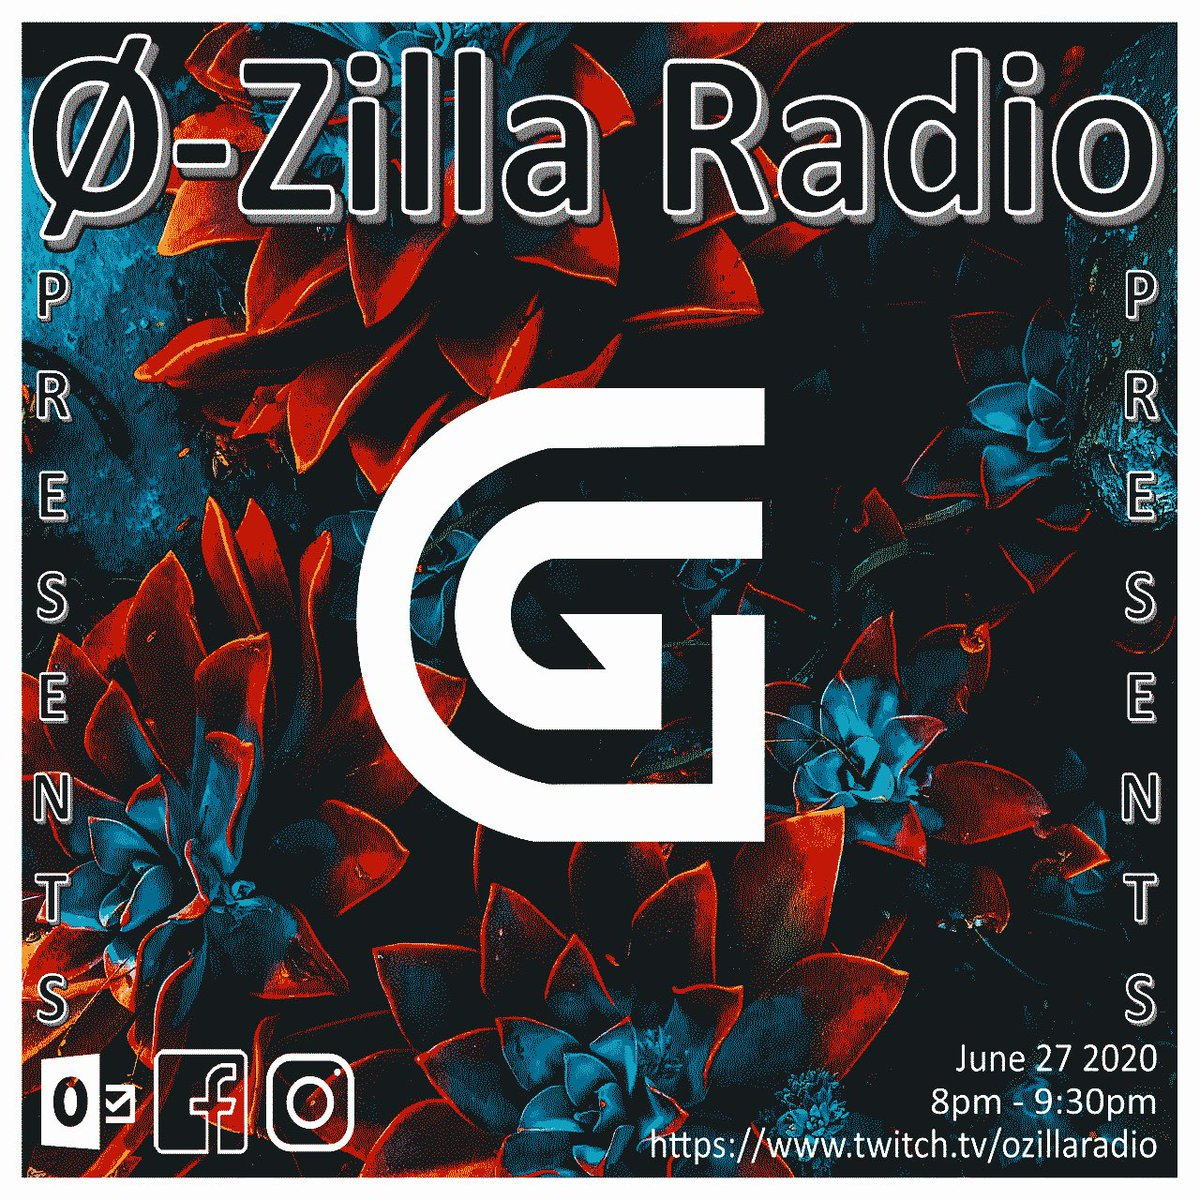 Doing a live stream for the homies over at @OzillaRadio this Saturday! https://t.co/sesRwVNtOr